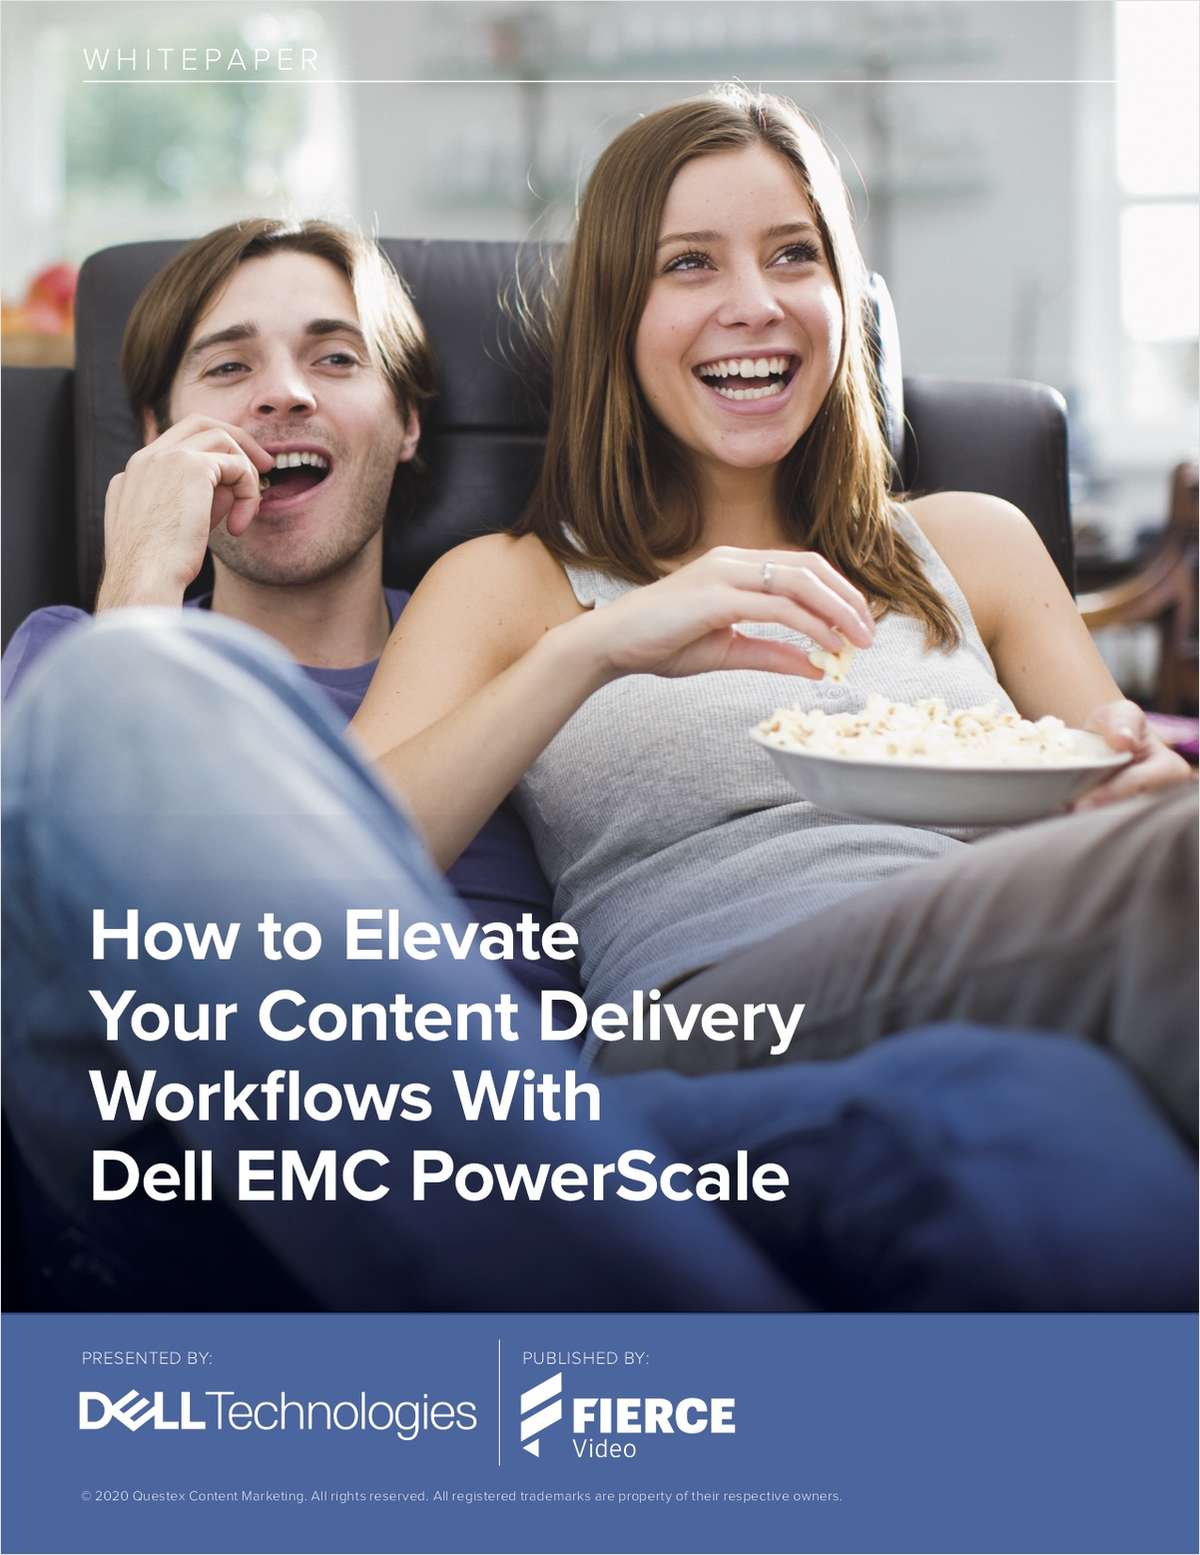 How to Elevate Your Content Delivery Workflows With Dell EMC PowerScale